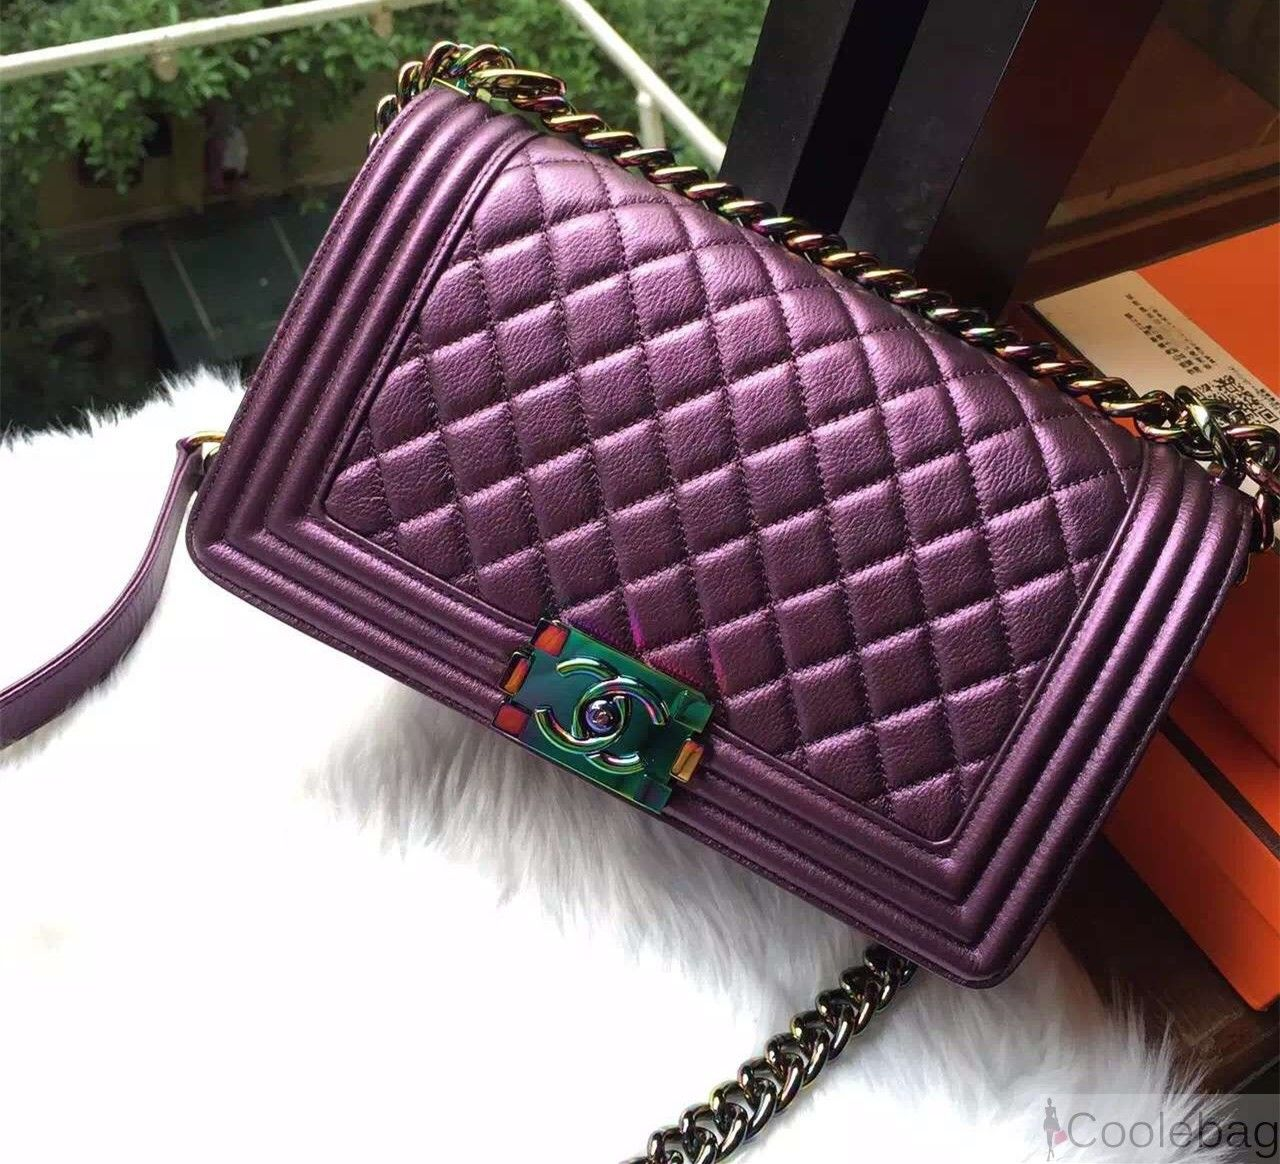 673d401fc89d CHANEL OLD MEDIUM BOY FLAP BAG WITH RAINBOW HARDWARE IN PURPLE ...